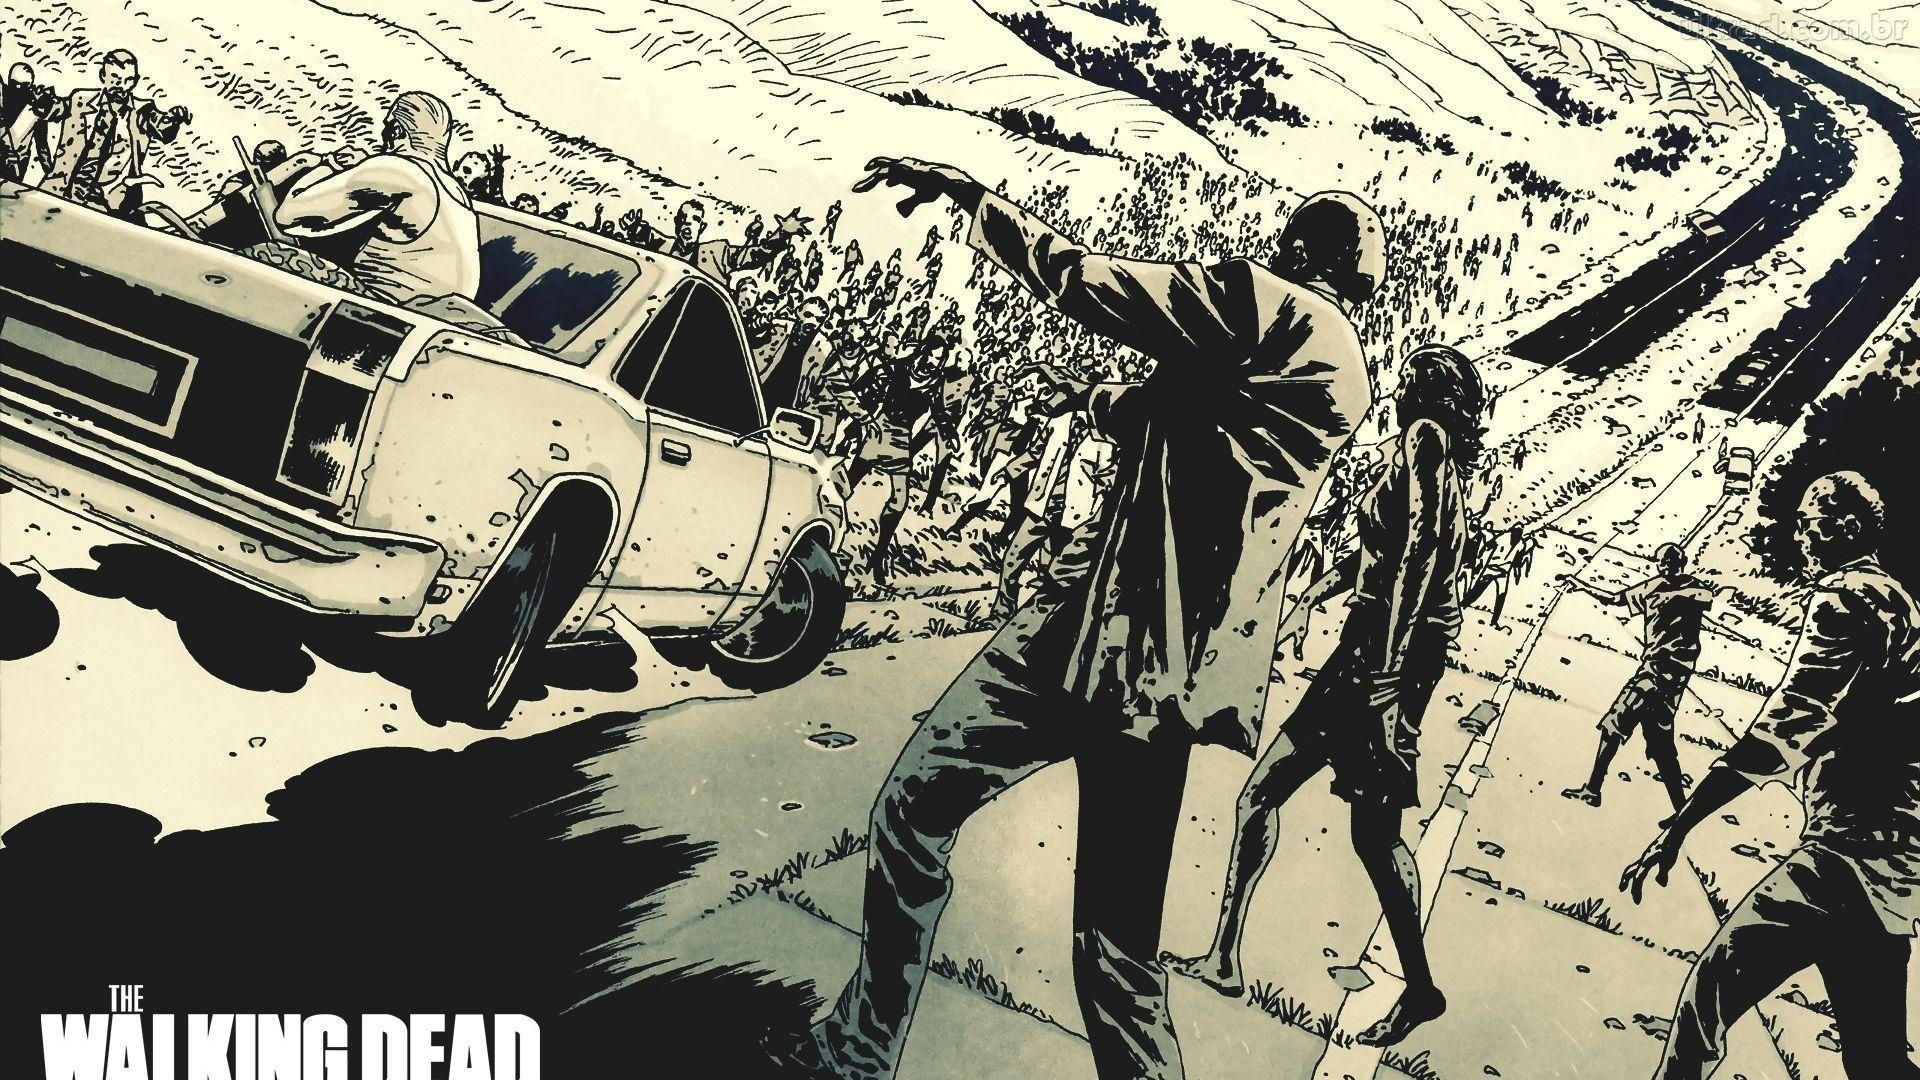 10 Top The Walking Dead Comics Wallpaper FULL HD 1920×1080 For PC Desktop